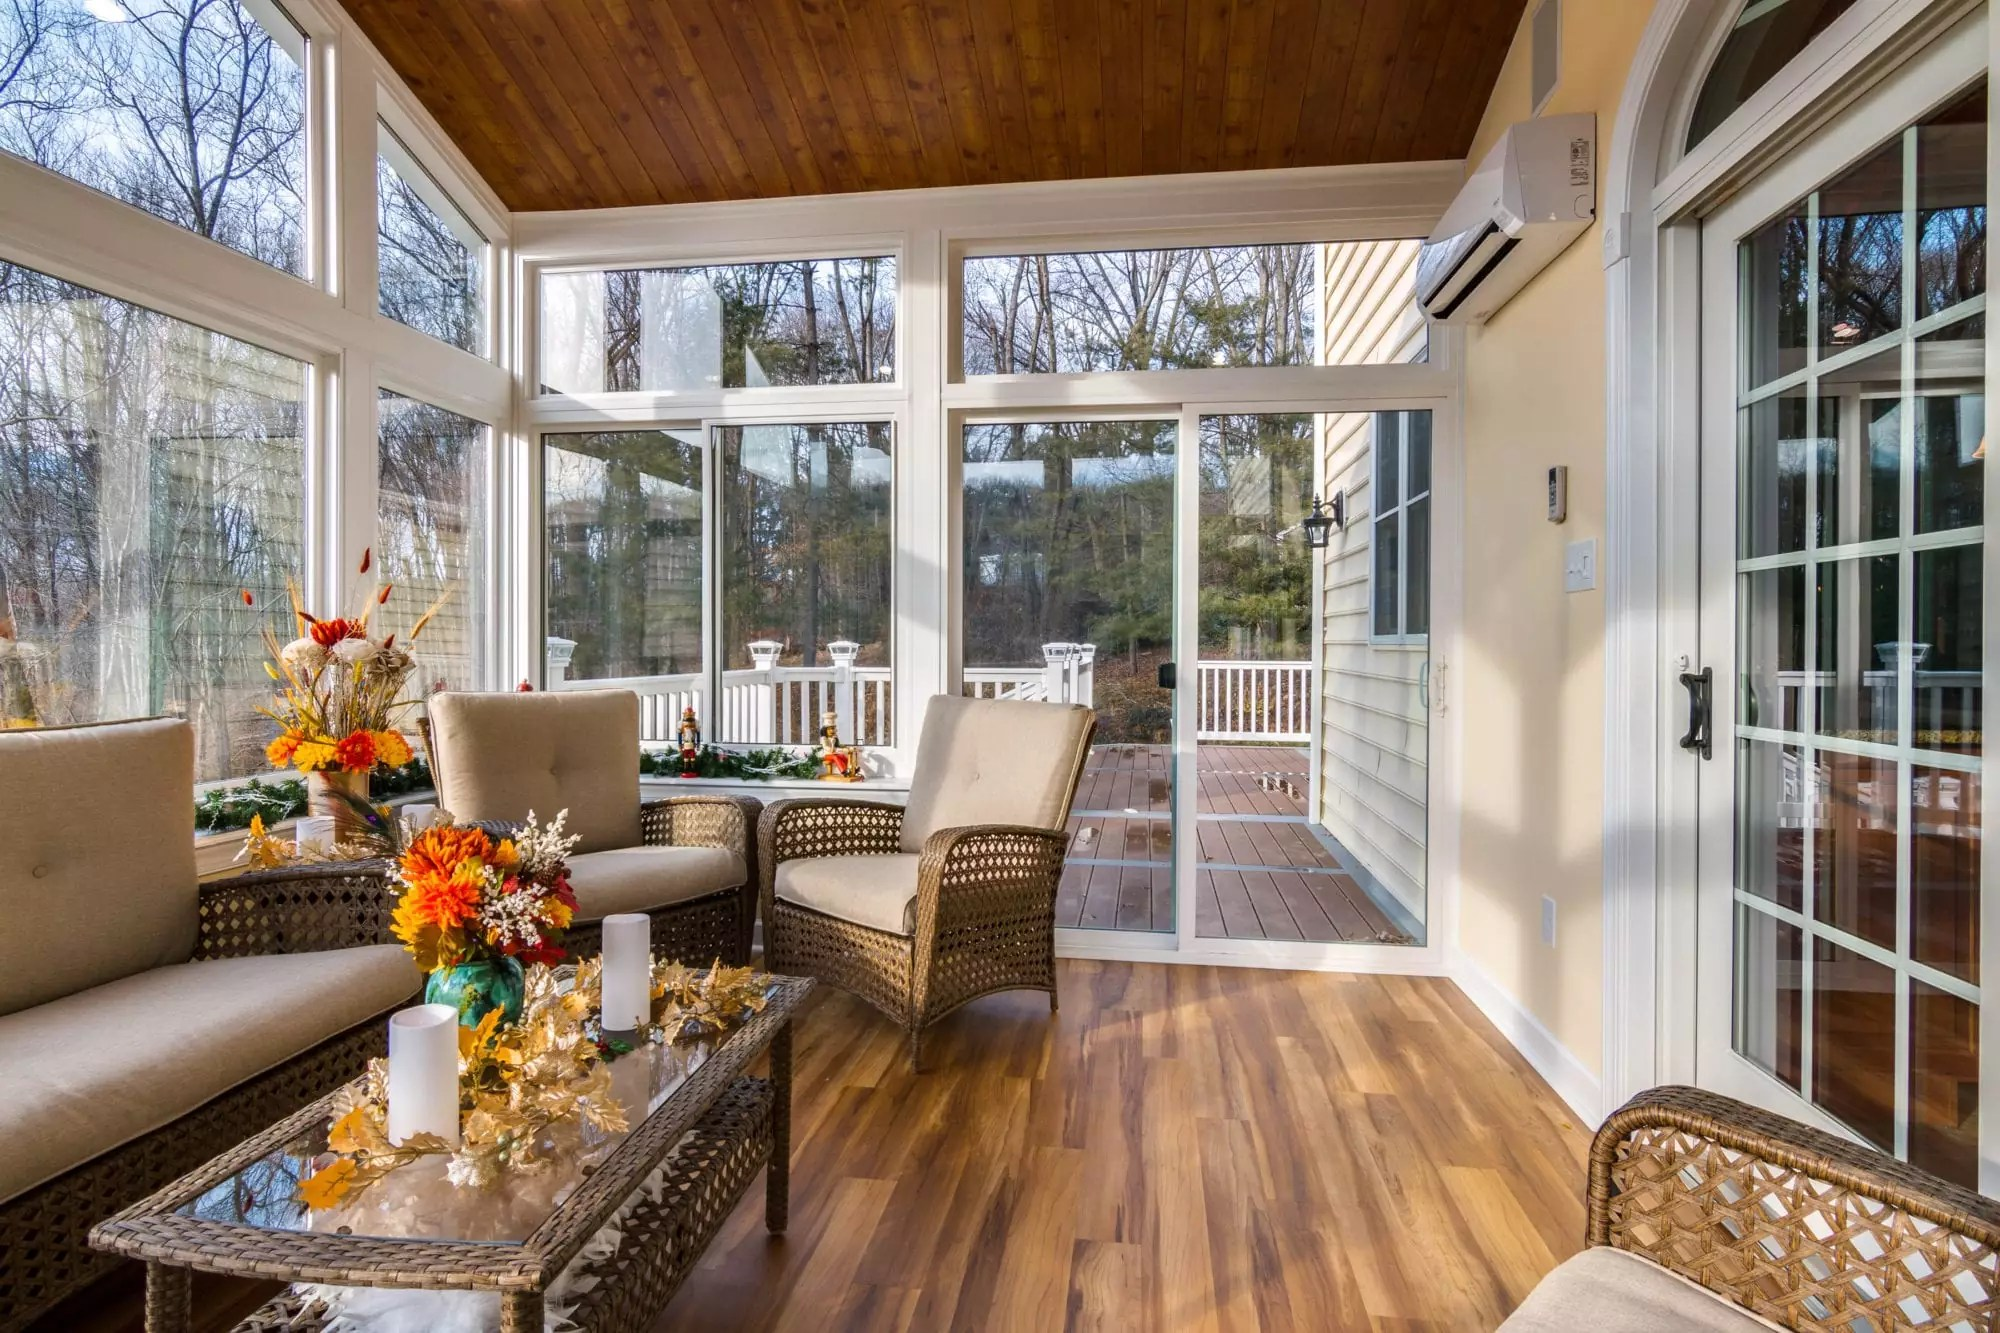 Living Space Sunrooms and Patio Enclosures in Maryland on Backyard Patio Enclosure Ideas  id=13164